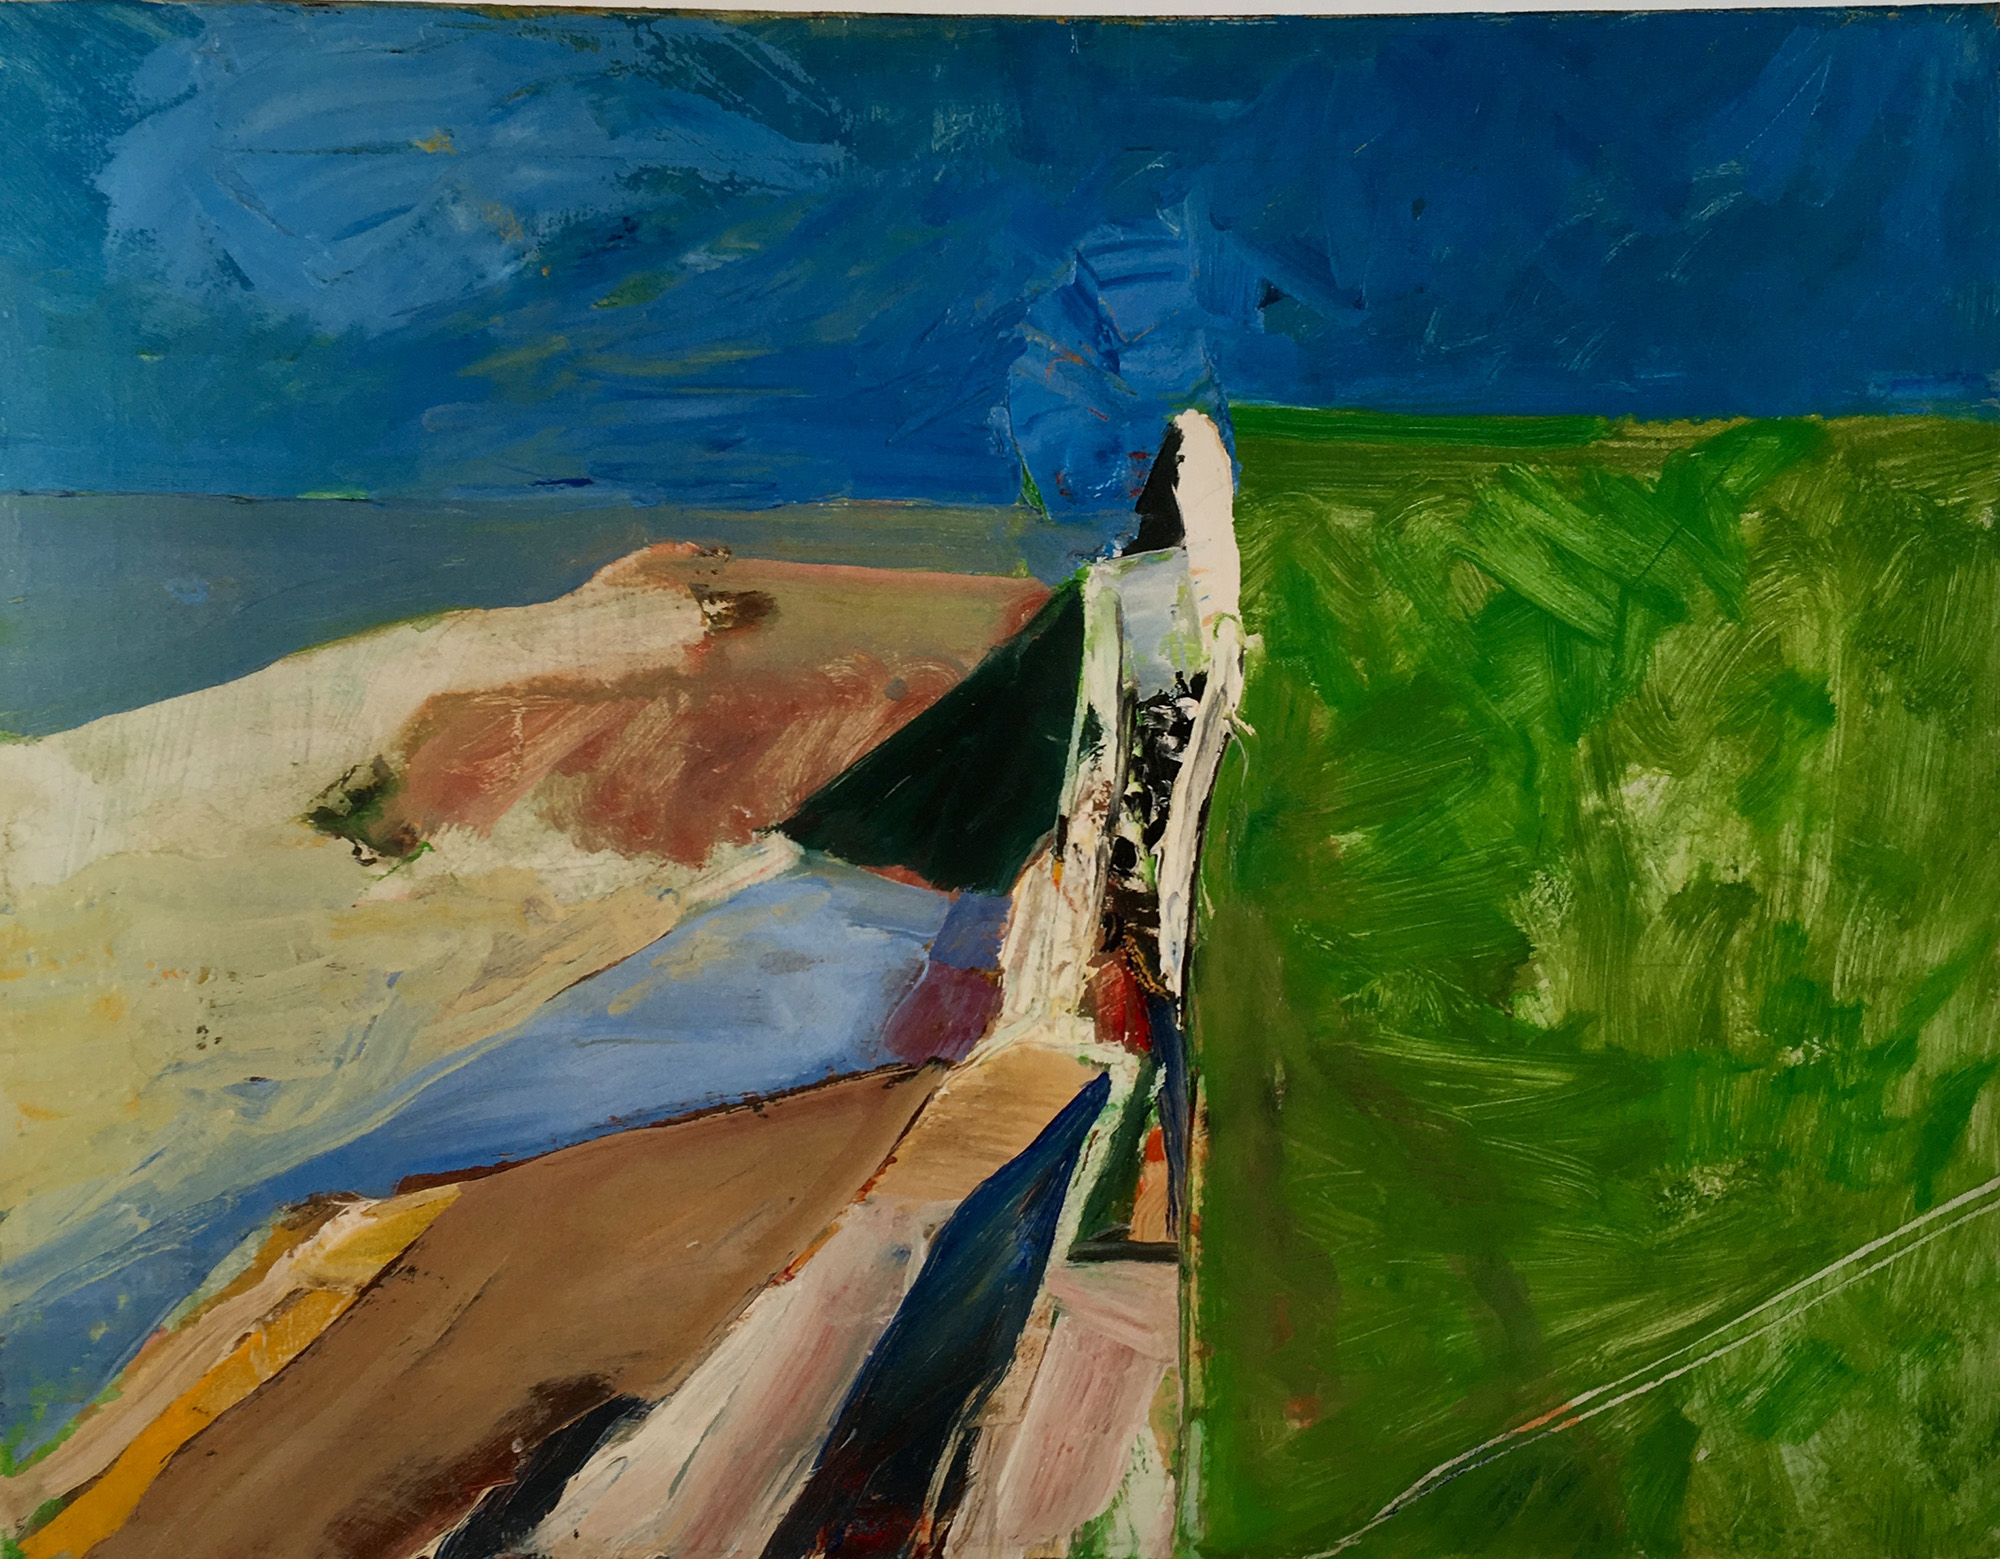 Diebenkorn, strongly abstract